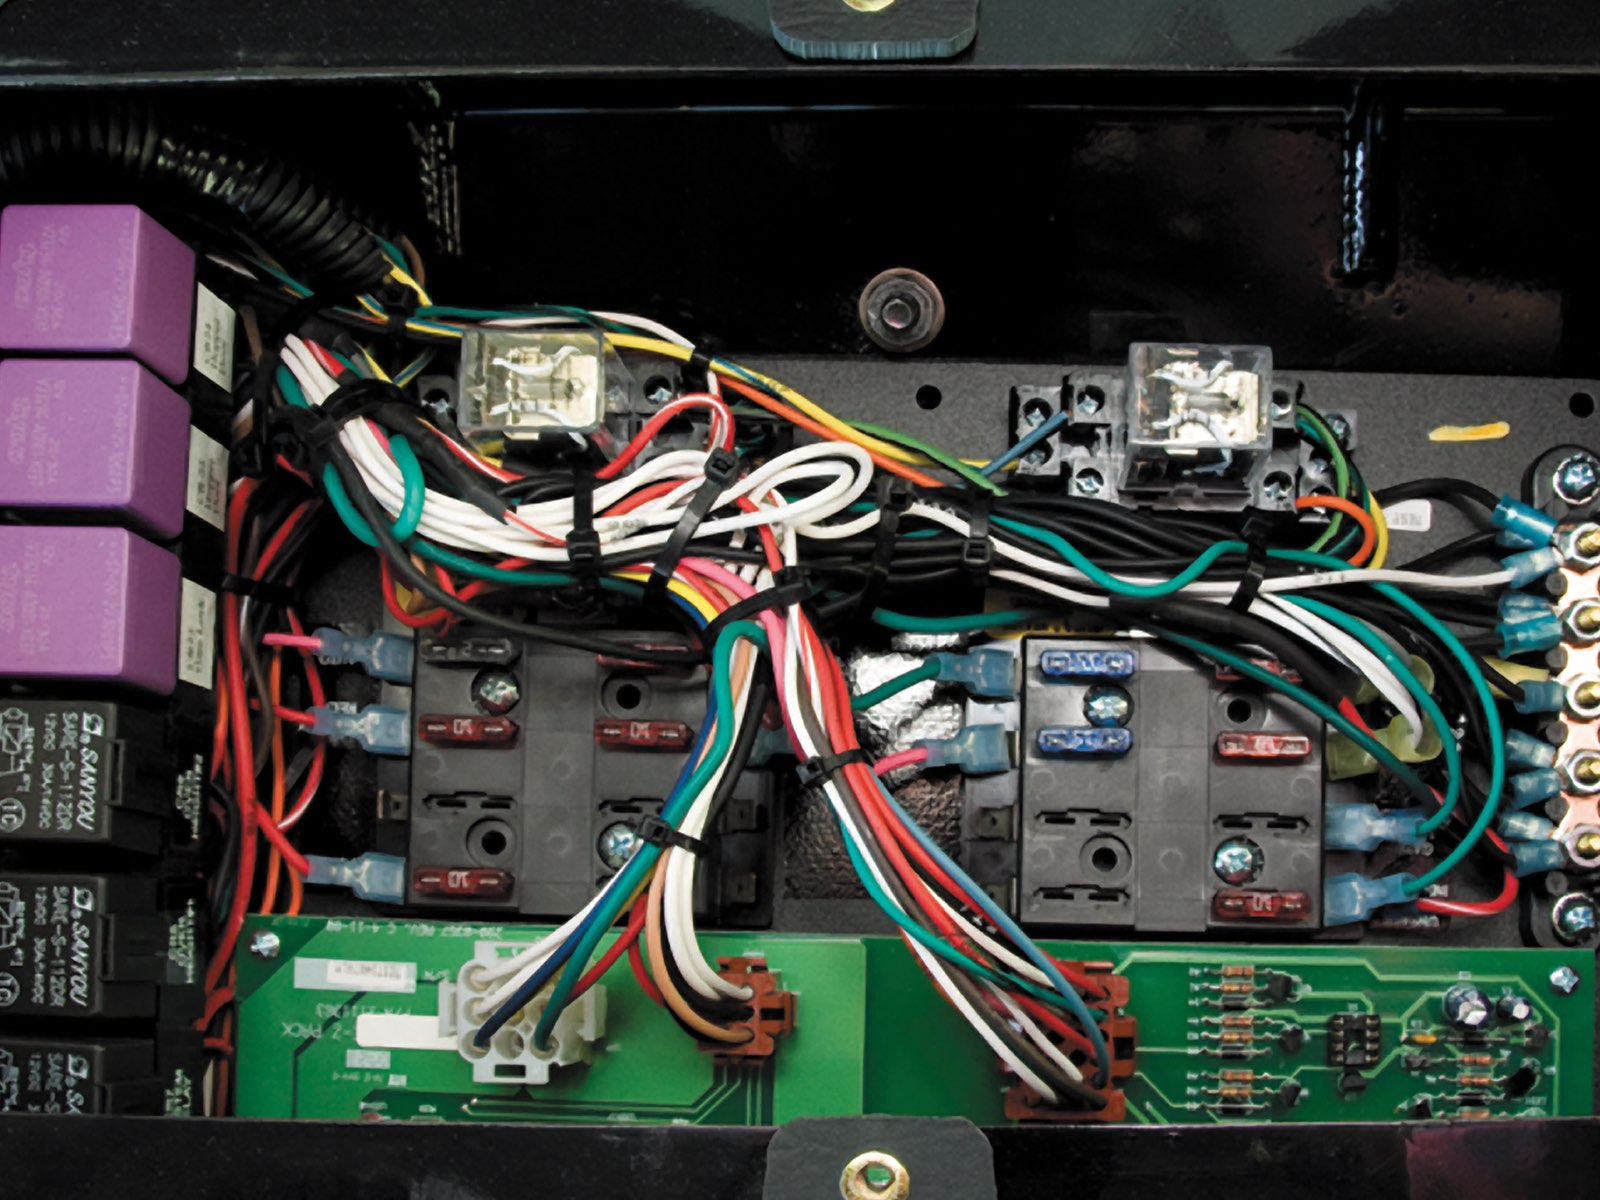 No onboard computers make it simple — Relay logic instead of computers or PLCs makes diagnosis and repair quick and easy. Troubleshoot with a test light.